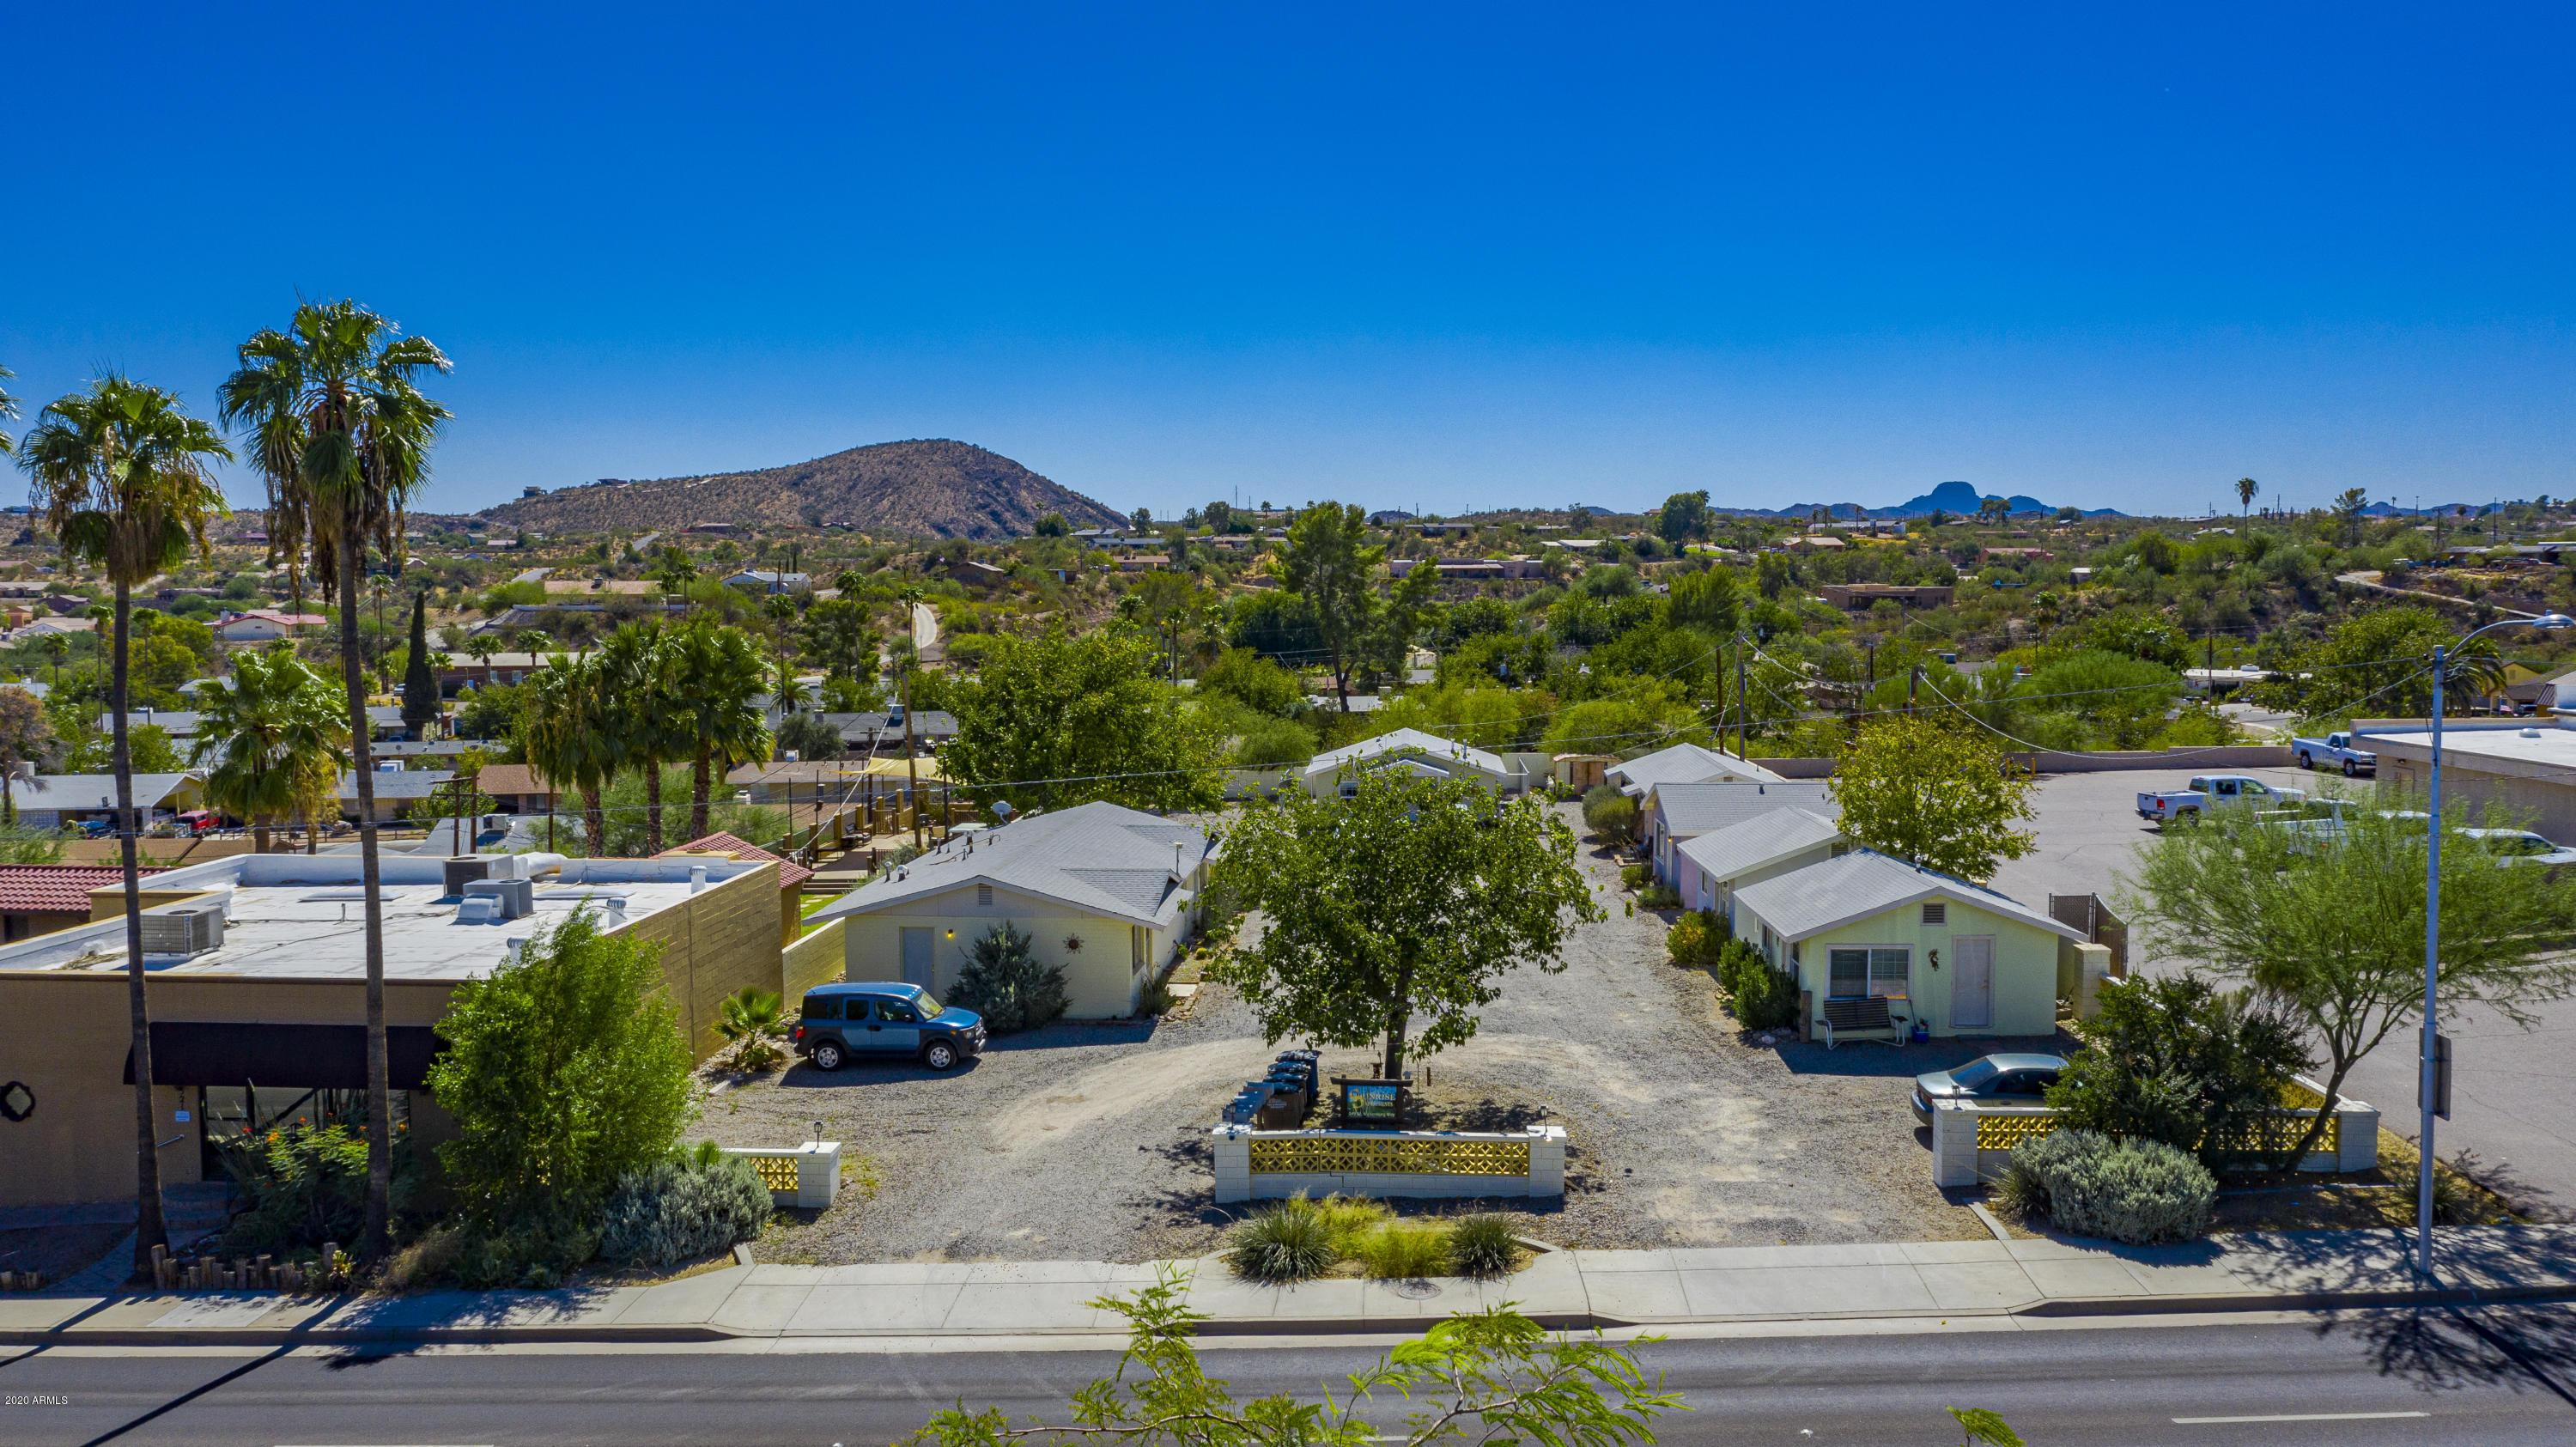 Property Image for 549 Wickenburg Way